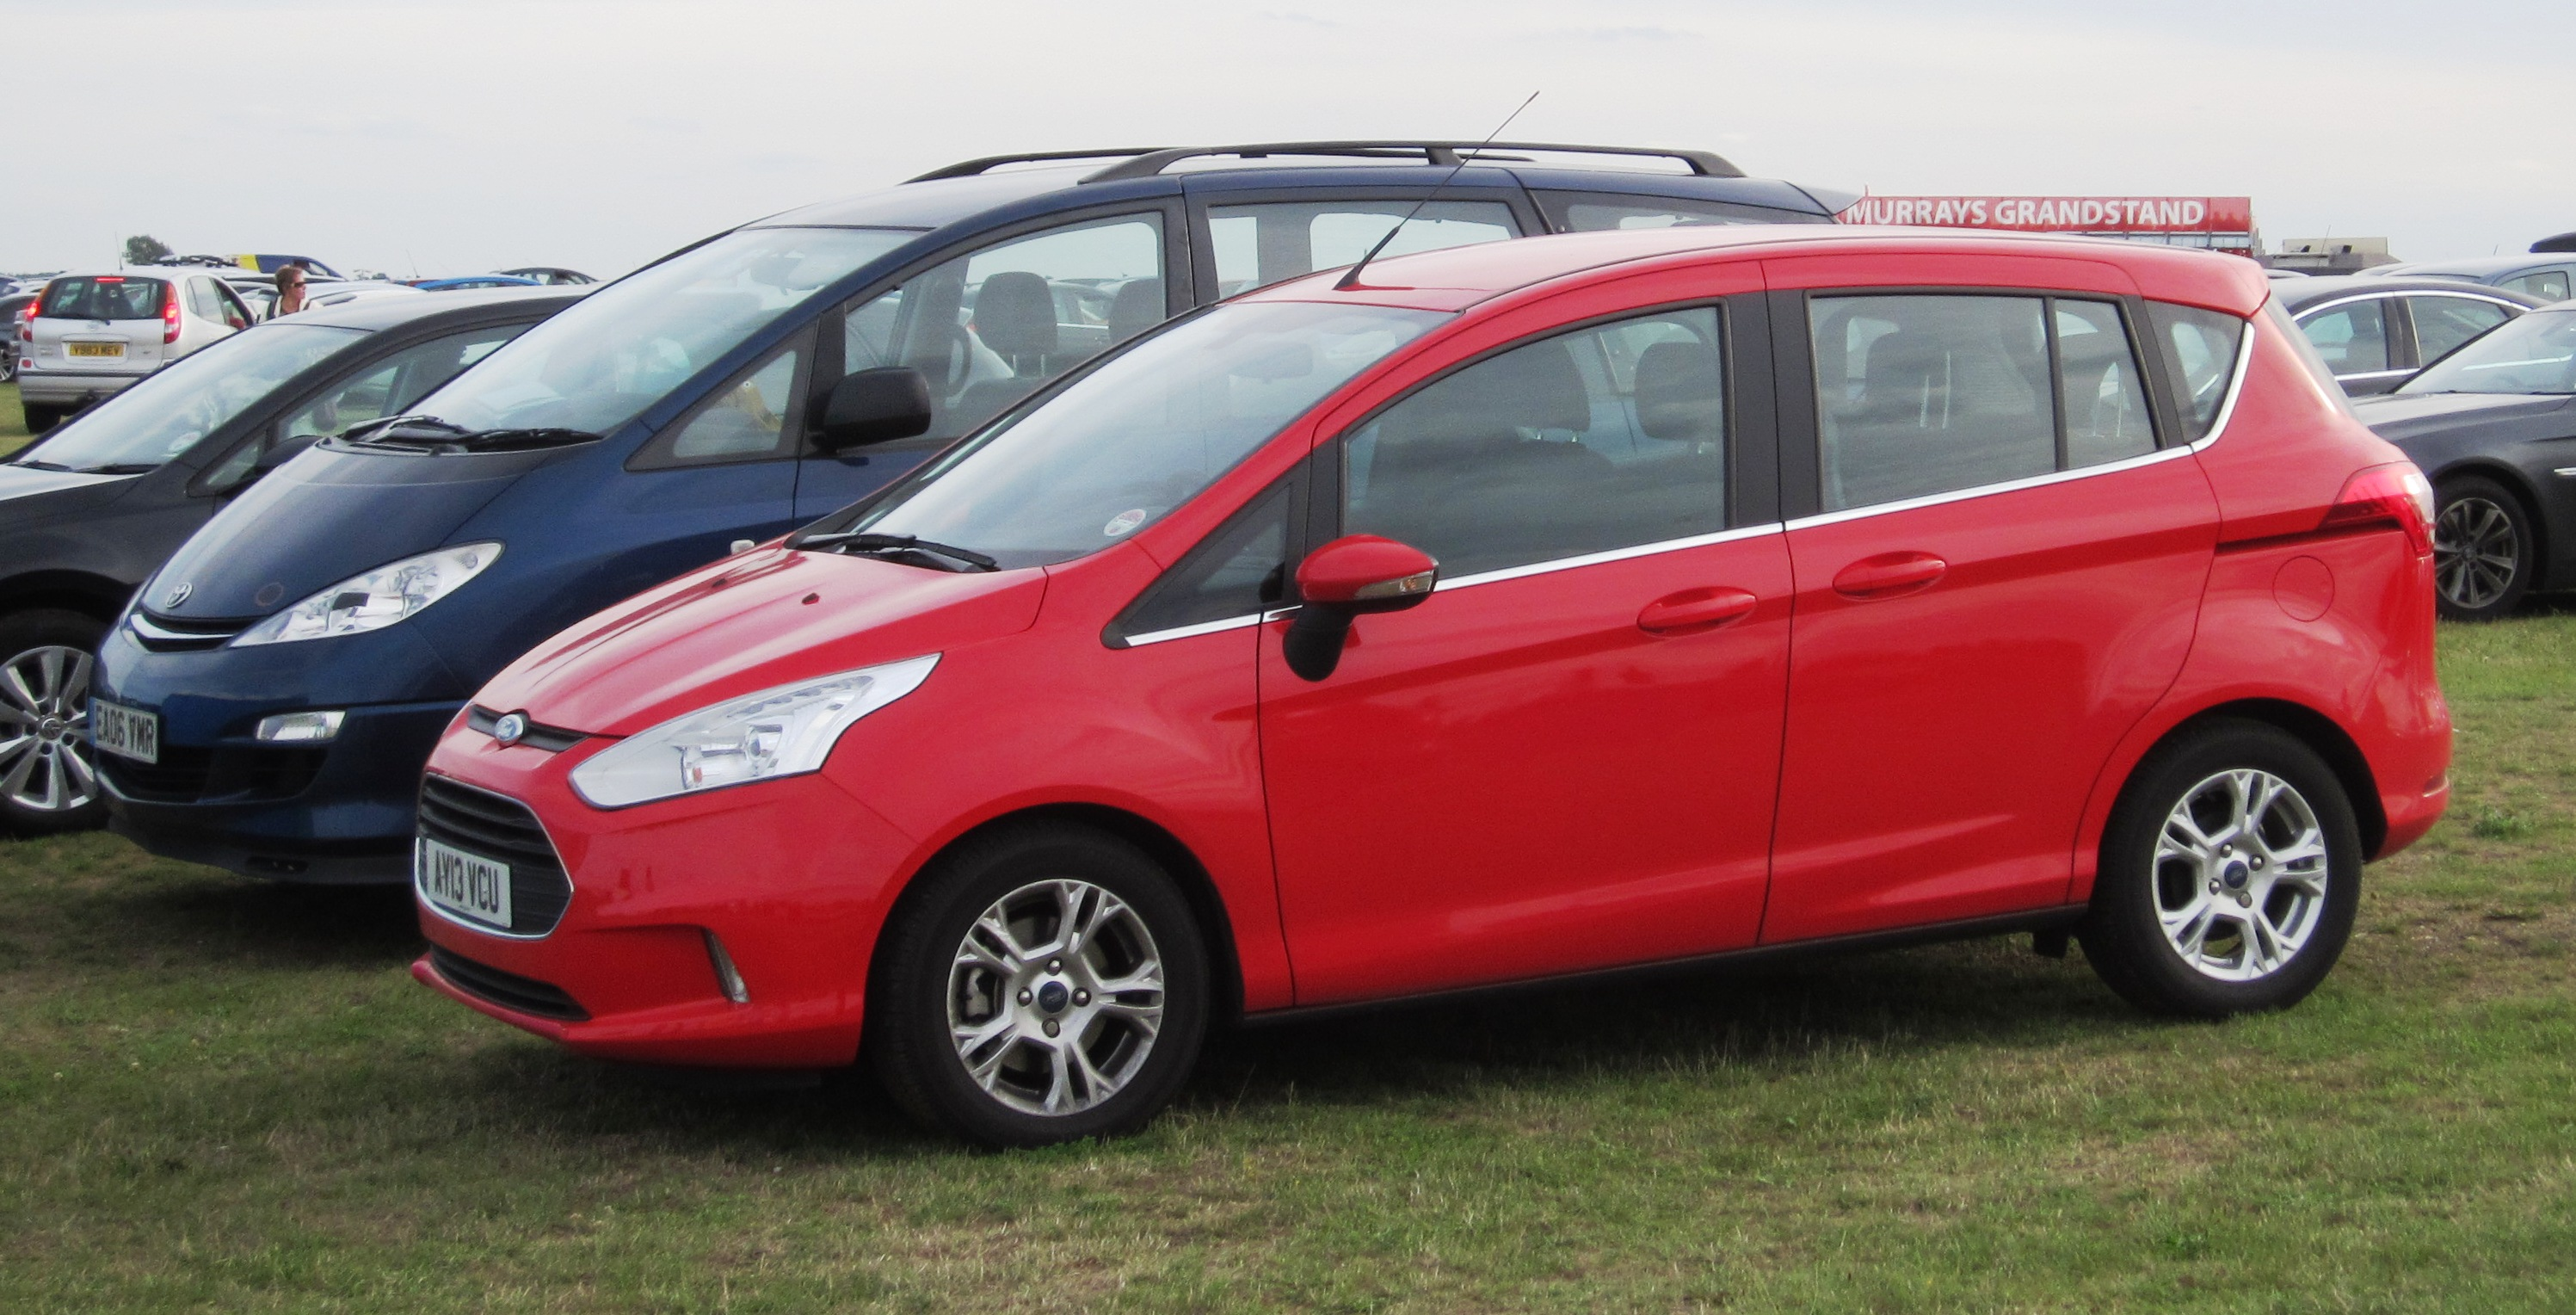 file ford b max 2013 at snetterton with previa as background jpg wikimedia commons. Black Bedroom Furniture Sets. Home Design Ideas